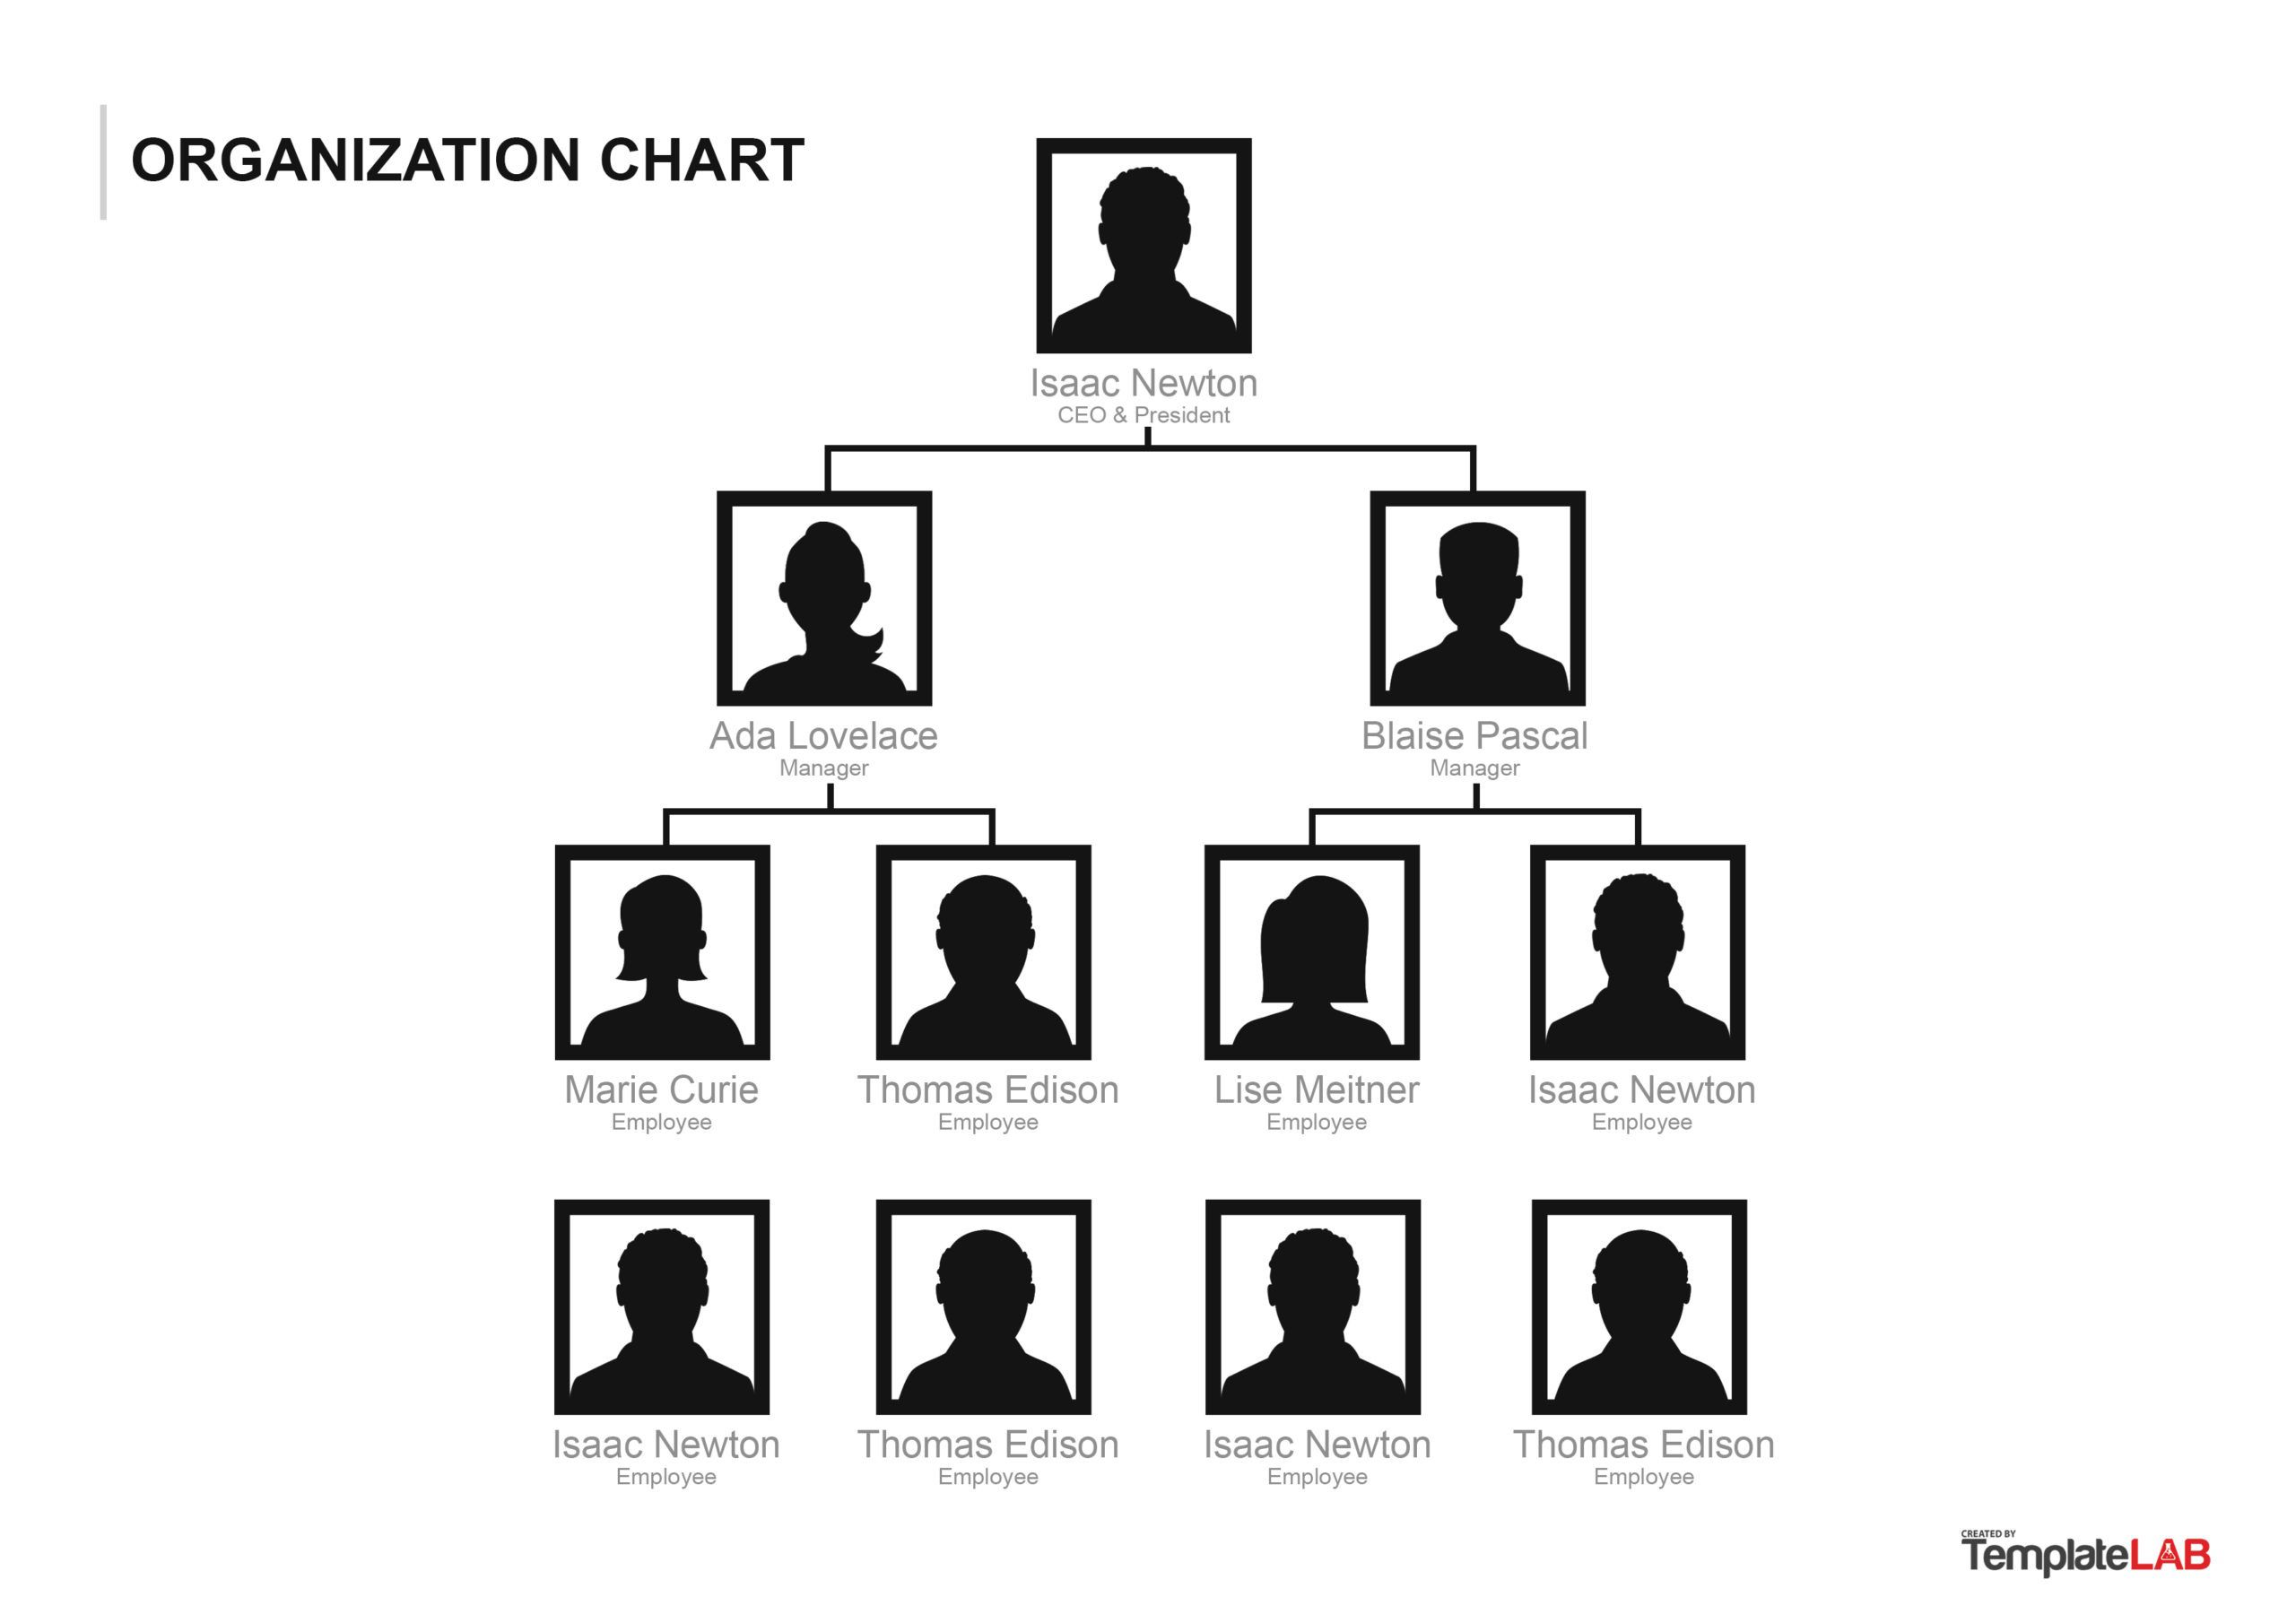 009 Fascinating Free Organizational Chart Template Word 2007 High Def Full